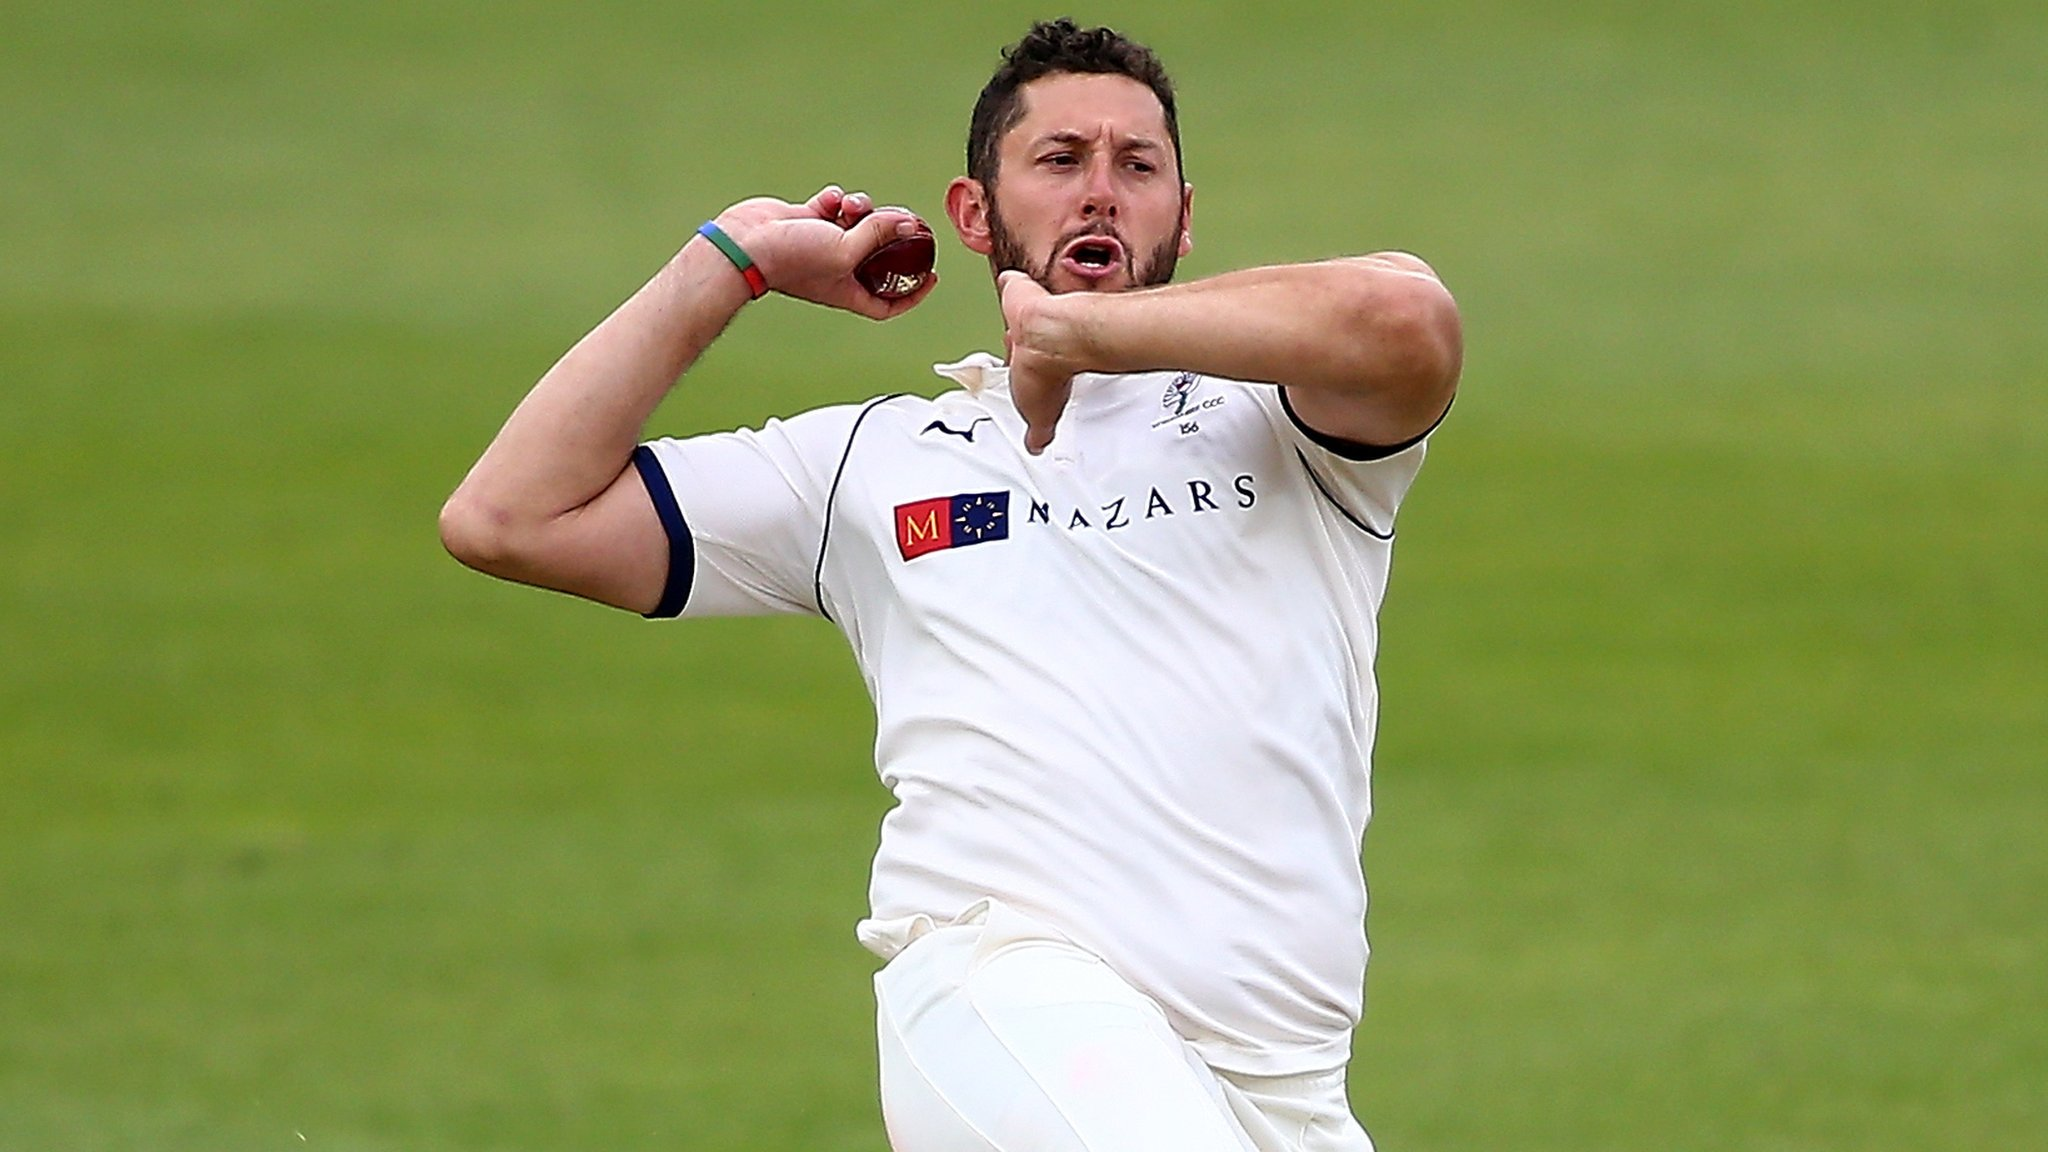 County Championship: Tim Bresnan takes 5-28 as Tykes forge ahead against Hants